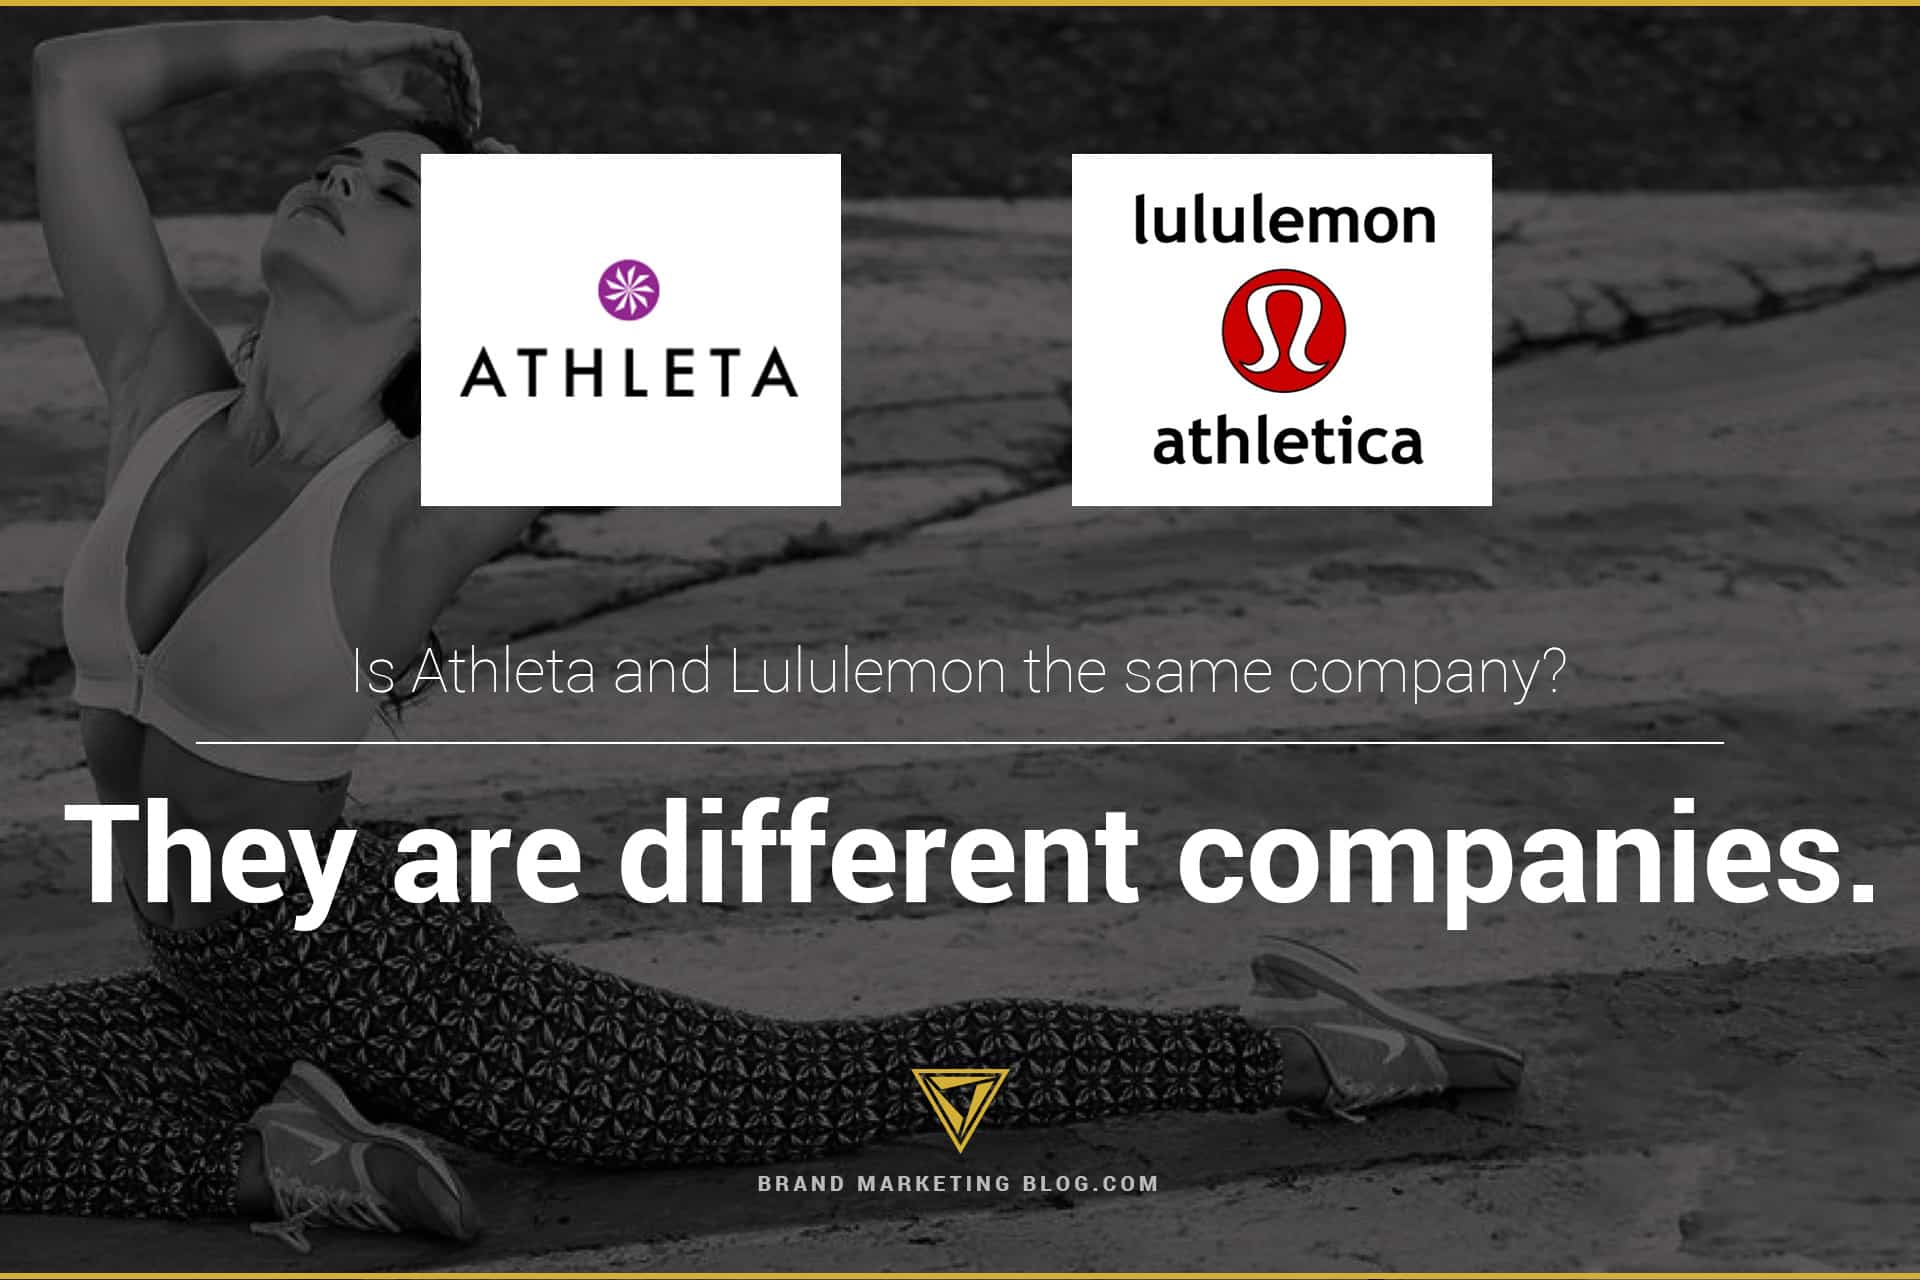 Are Lululemon and Athleta the same company? They are different companies.